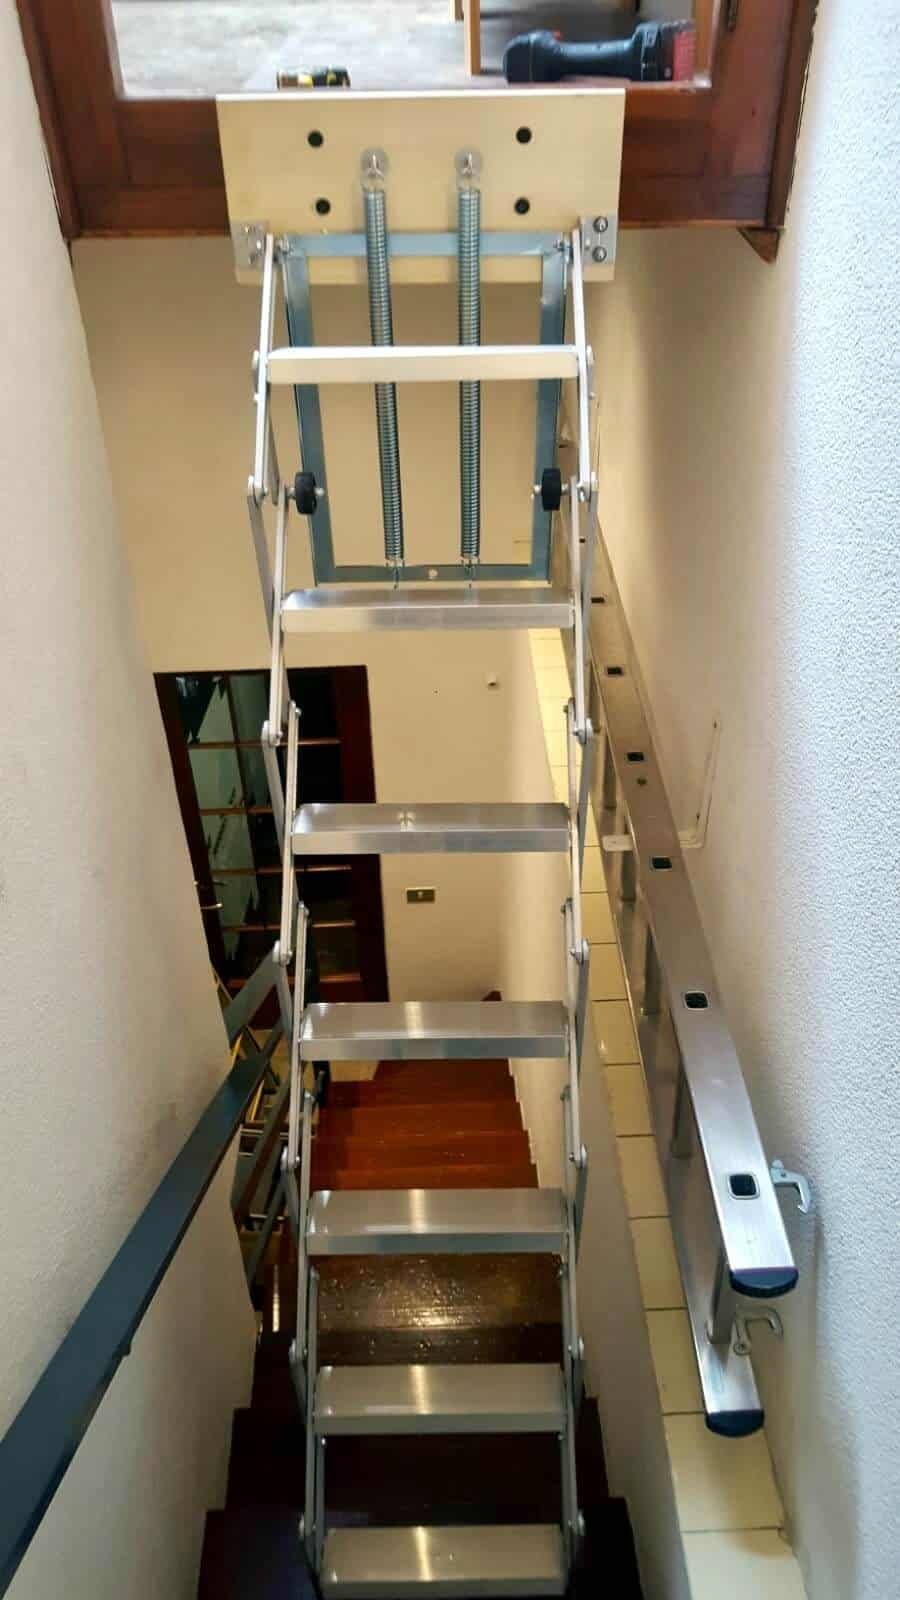 ESCALERA MINI PLEGABLE Y ESCAMOTEABLE PARA ALTILLOS.